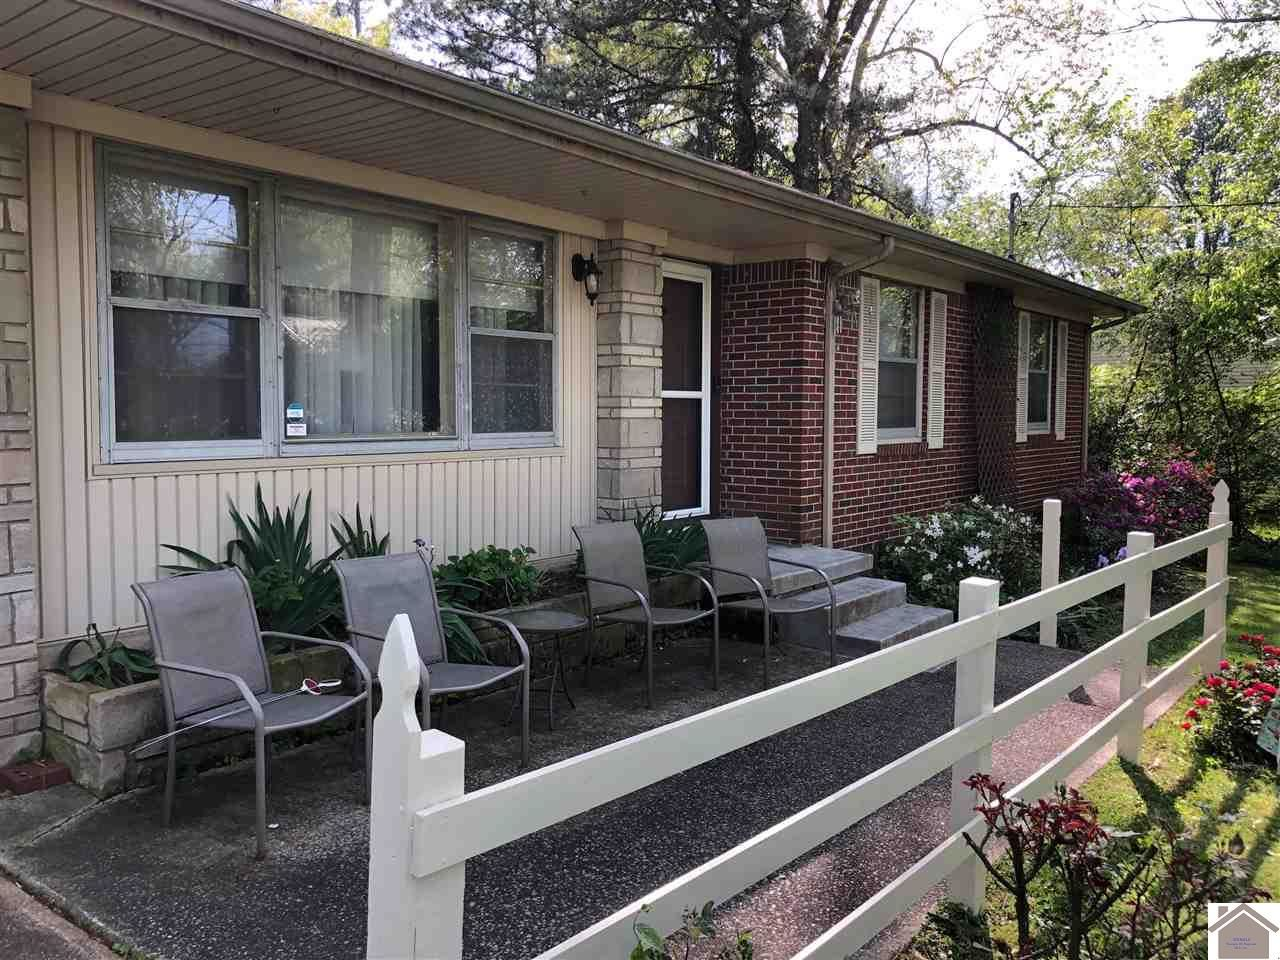 Property Image Of 4820 Exall In Paducah, Ky